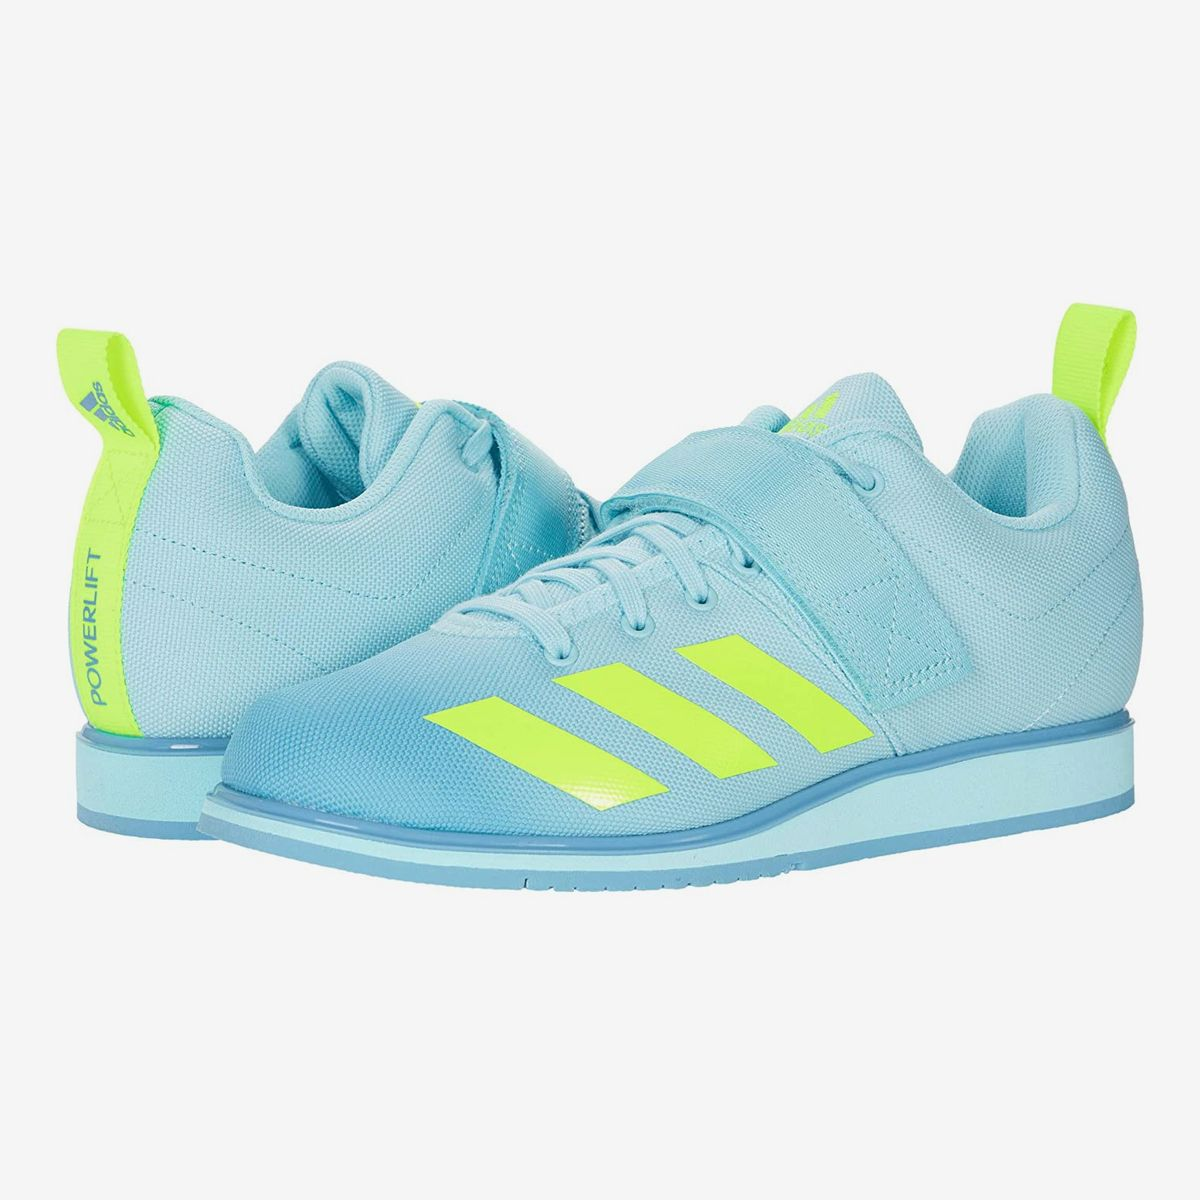 28 Best Workout Shoes for Women 2021   The Strategist